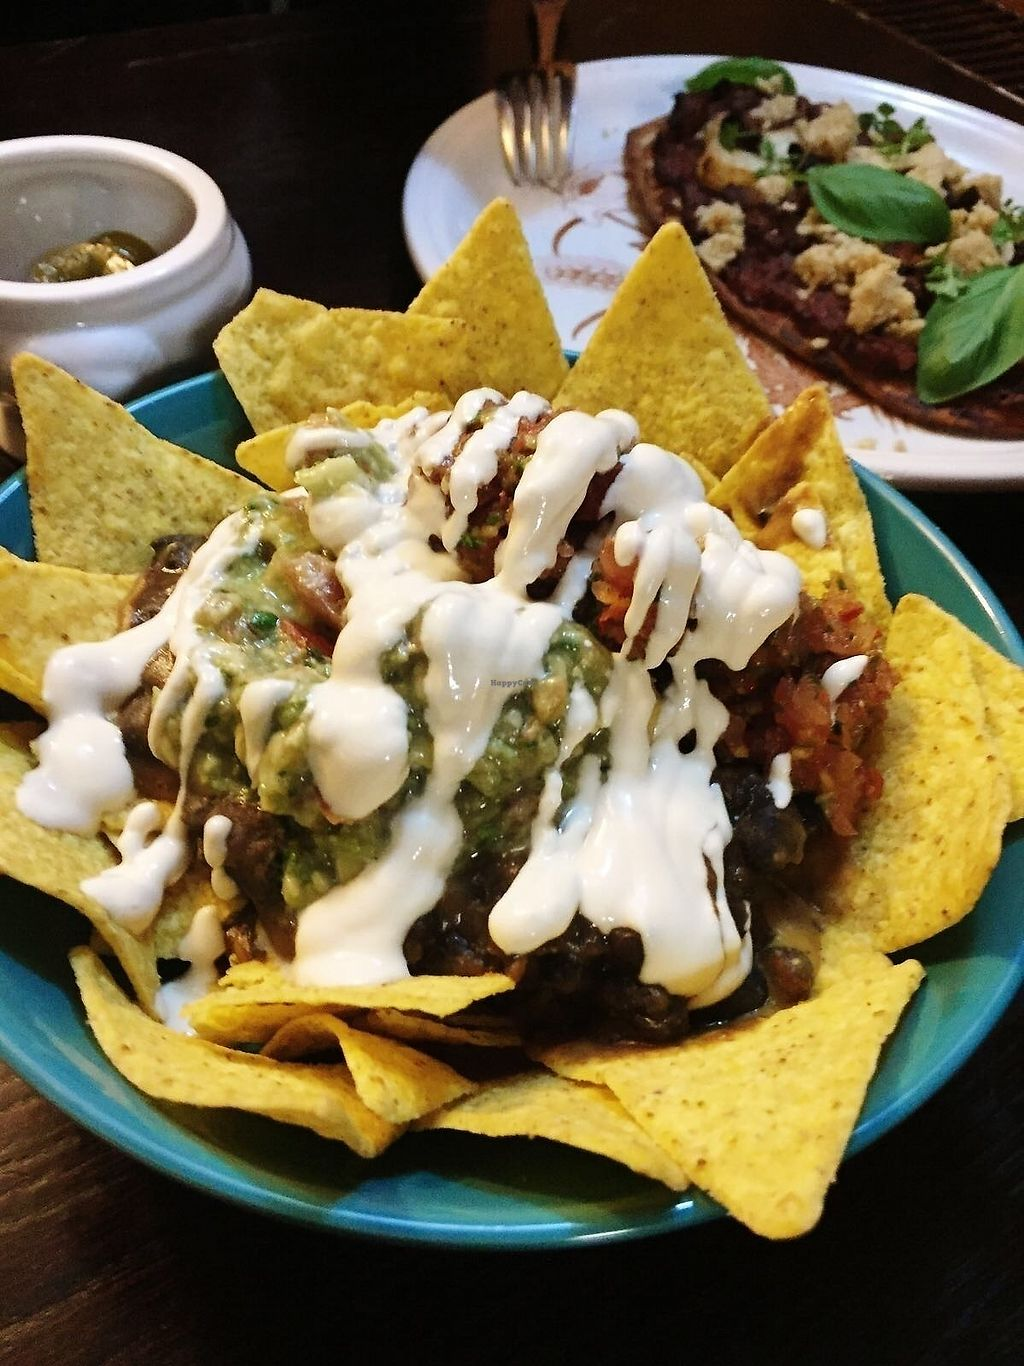 "Photo of Drakes Pub  by <a href=""/members/profile/TARAMCDONALD"">TARAMCDONALD</a> <br/>Vegan fully loaded nachos! <br/> October 16, 2017  - <a href='/contact/abuse/image/97228/315876'>Report</a>"